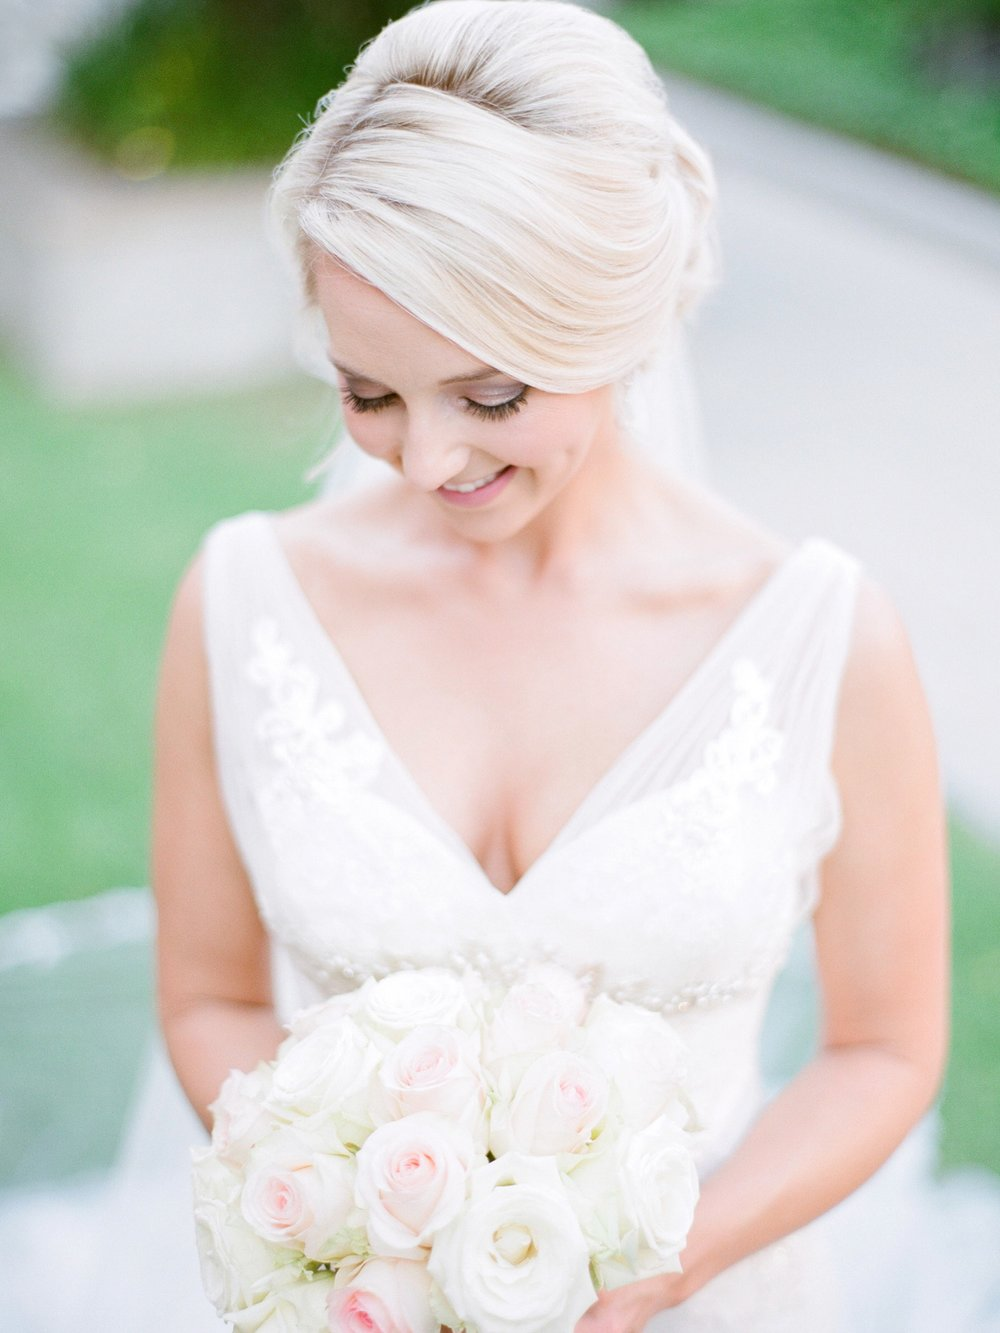 photography_editorial_alley station bridal_martha stewart wedding_blonde bride updo_montgomery wedding photographer_alabama wedding photographer_destin rosemary alys beach 30A wedding photographer